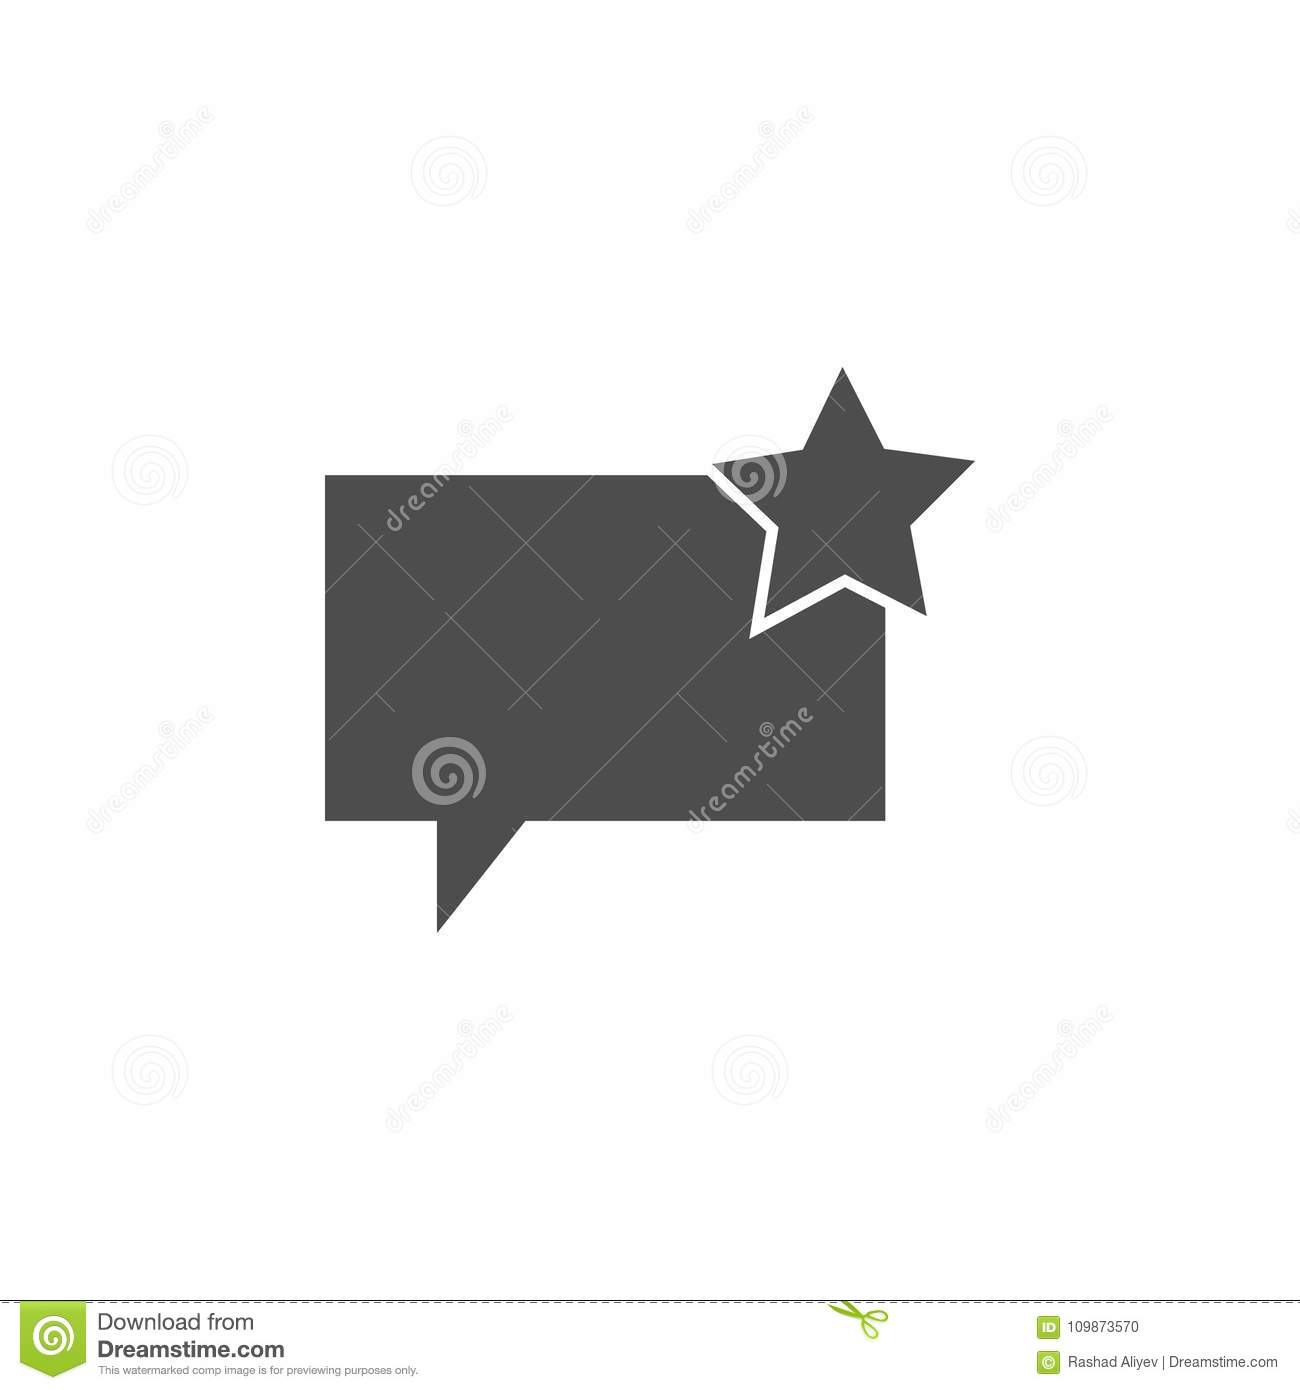 Communication bubbles with an asterisk icon elements of web icon communication bubbles with an asterisk icon elements of web icon premium quality graphic design icon signs and symbols collecti biocorpaavc Gallery